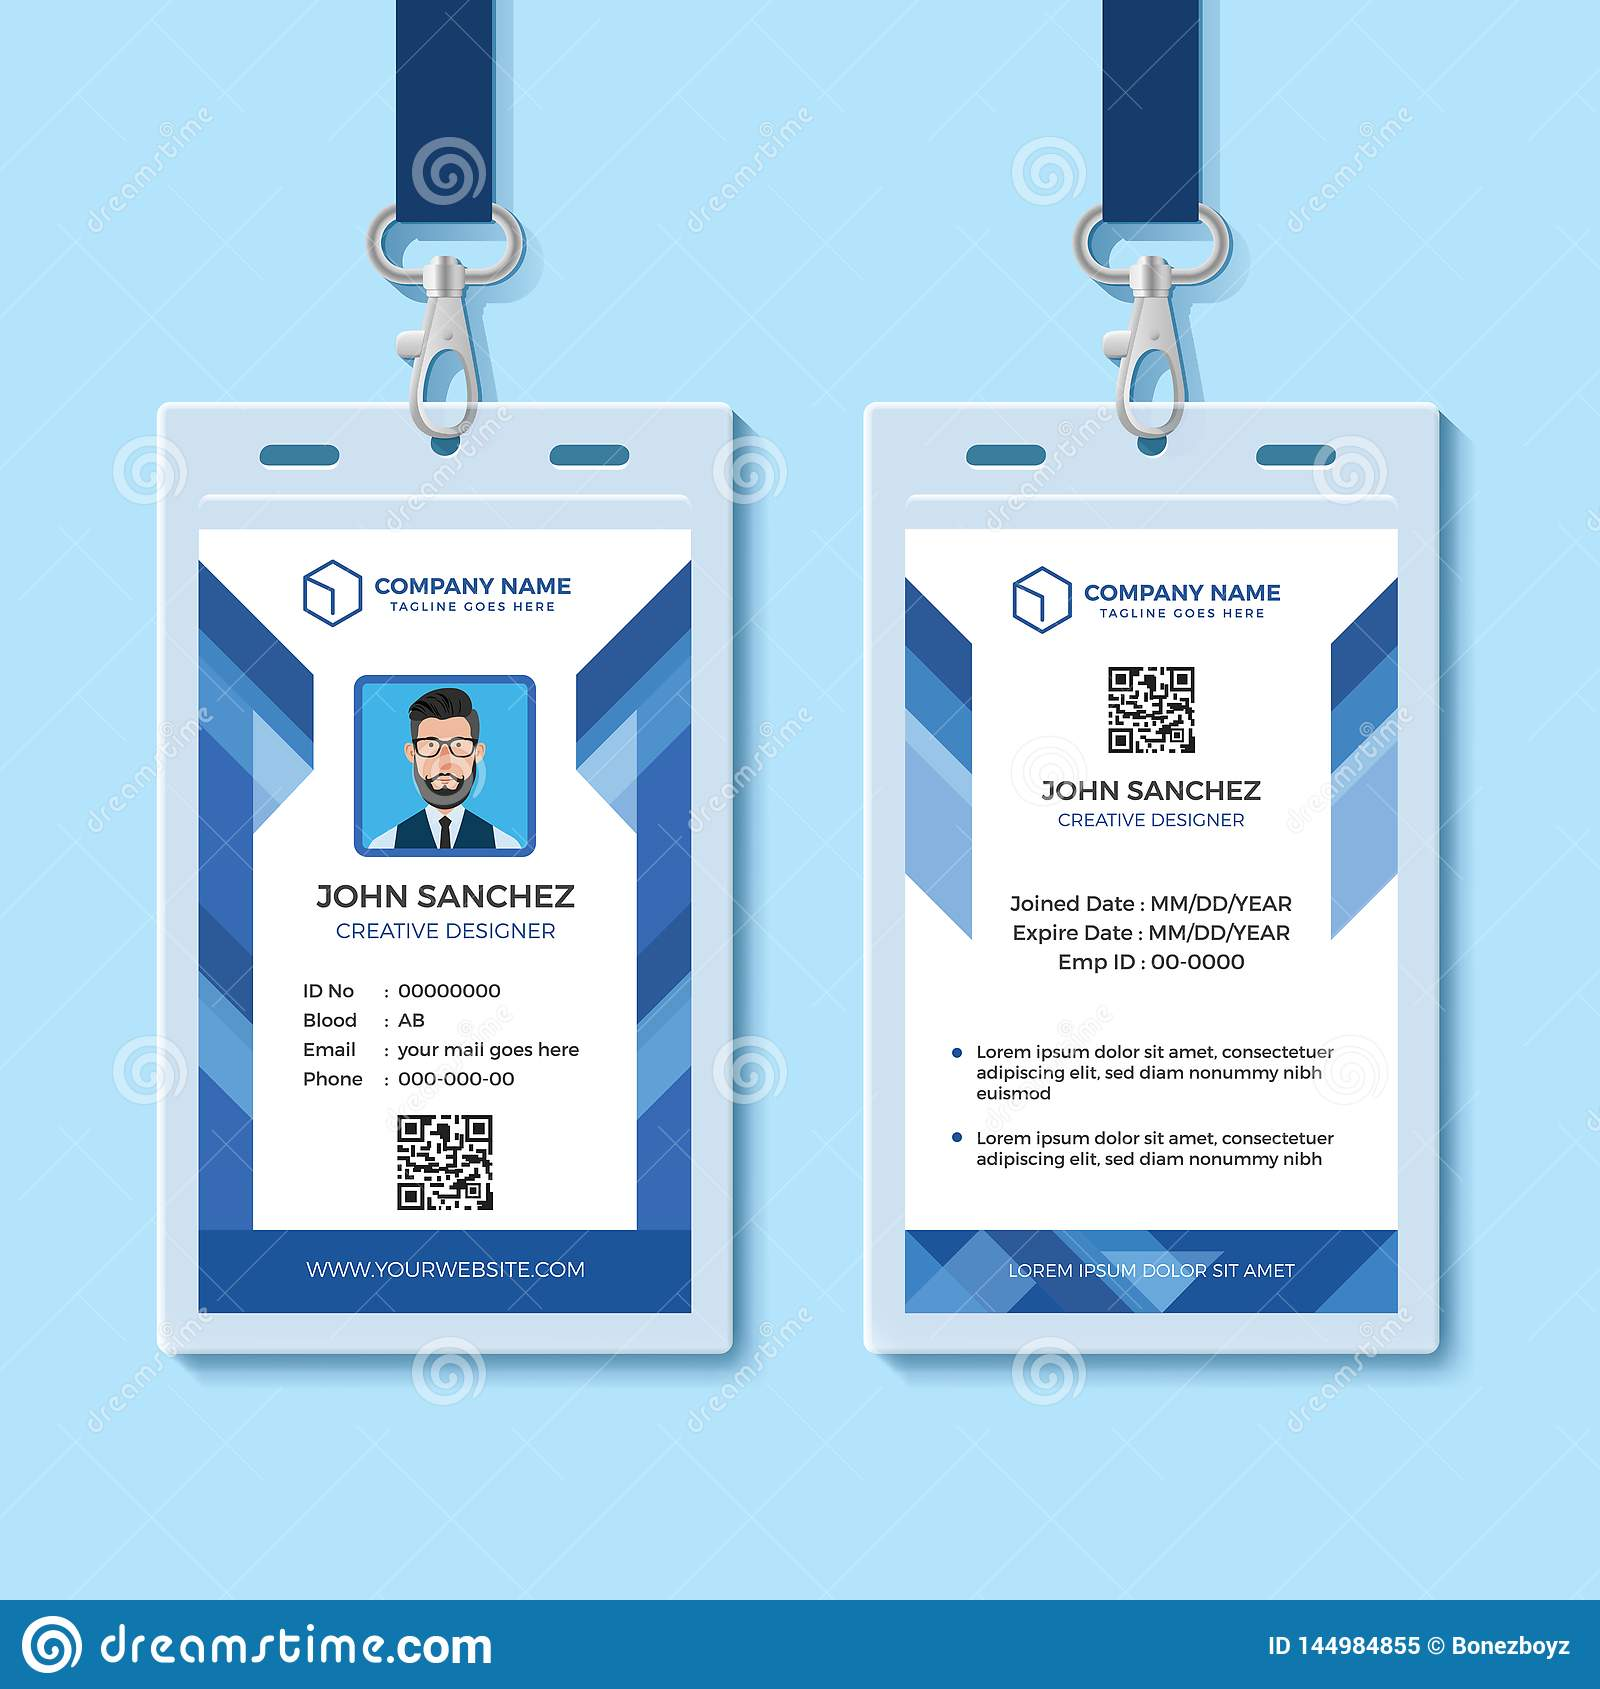 Identification Template Free from thumbs.dreamstime.com